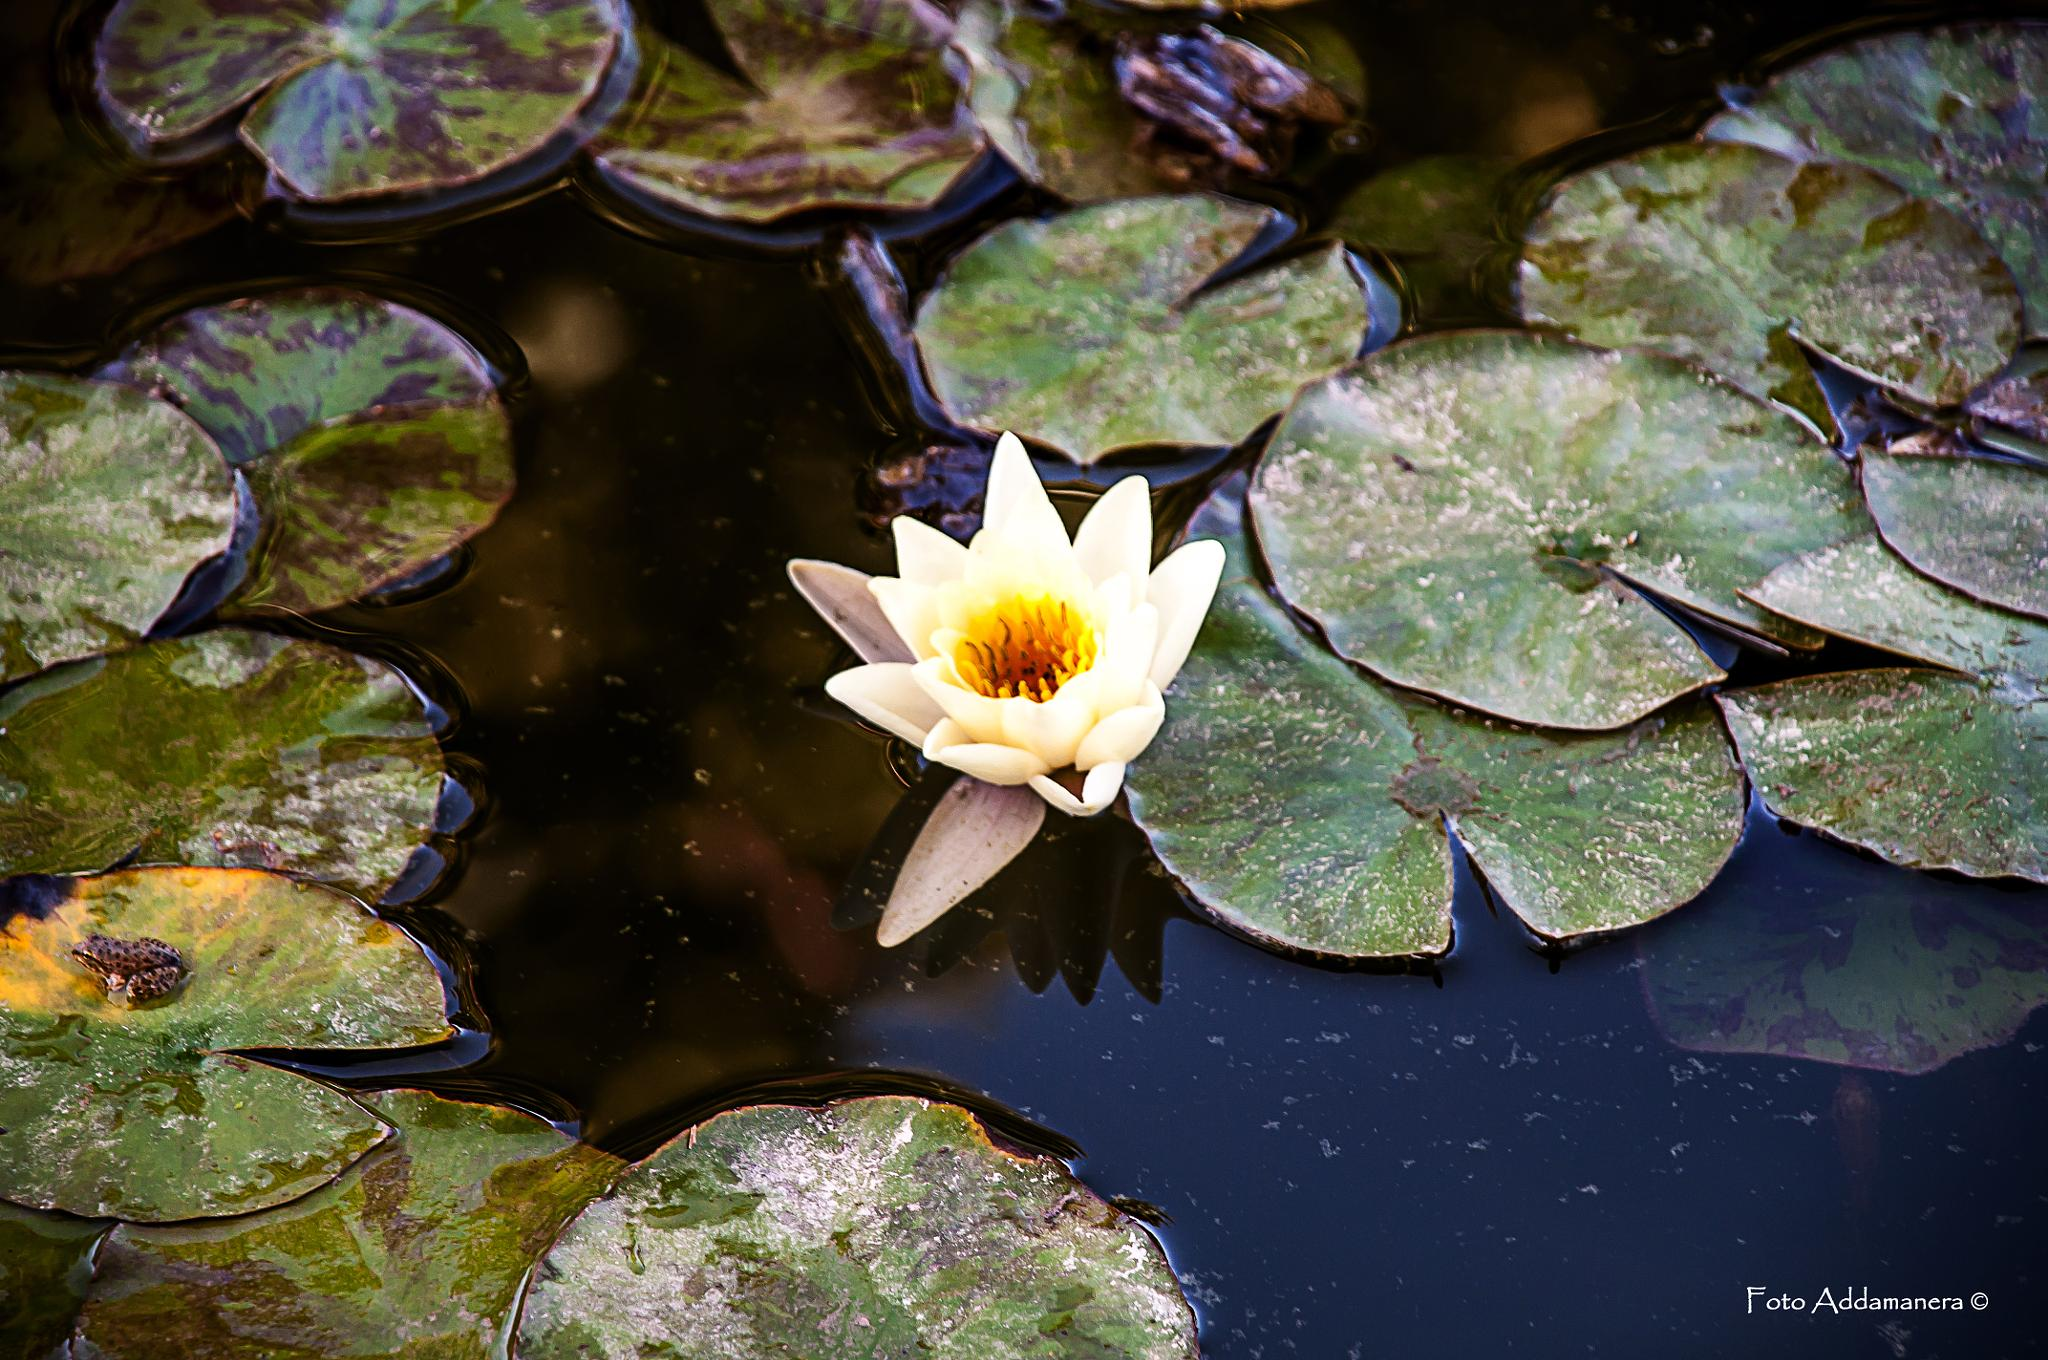 The frog & the waterlily by maurizio.tuccio